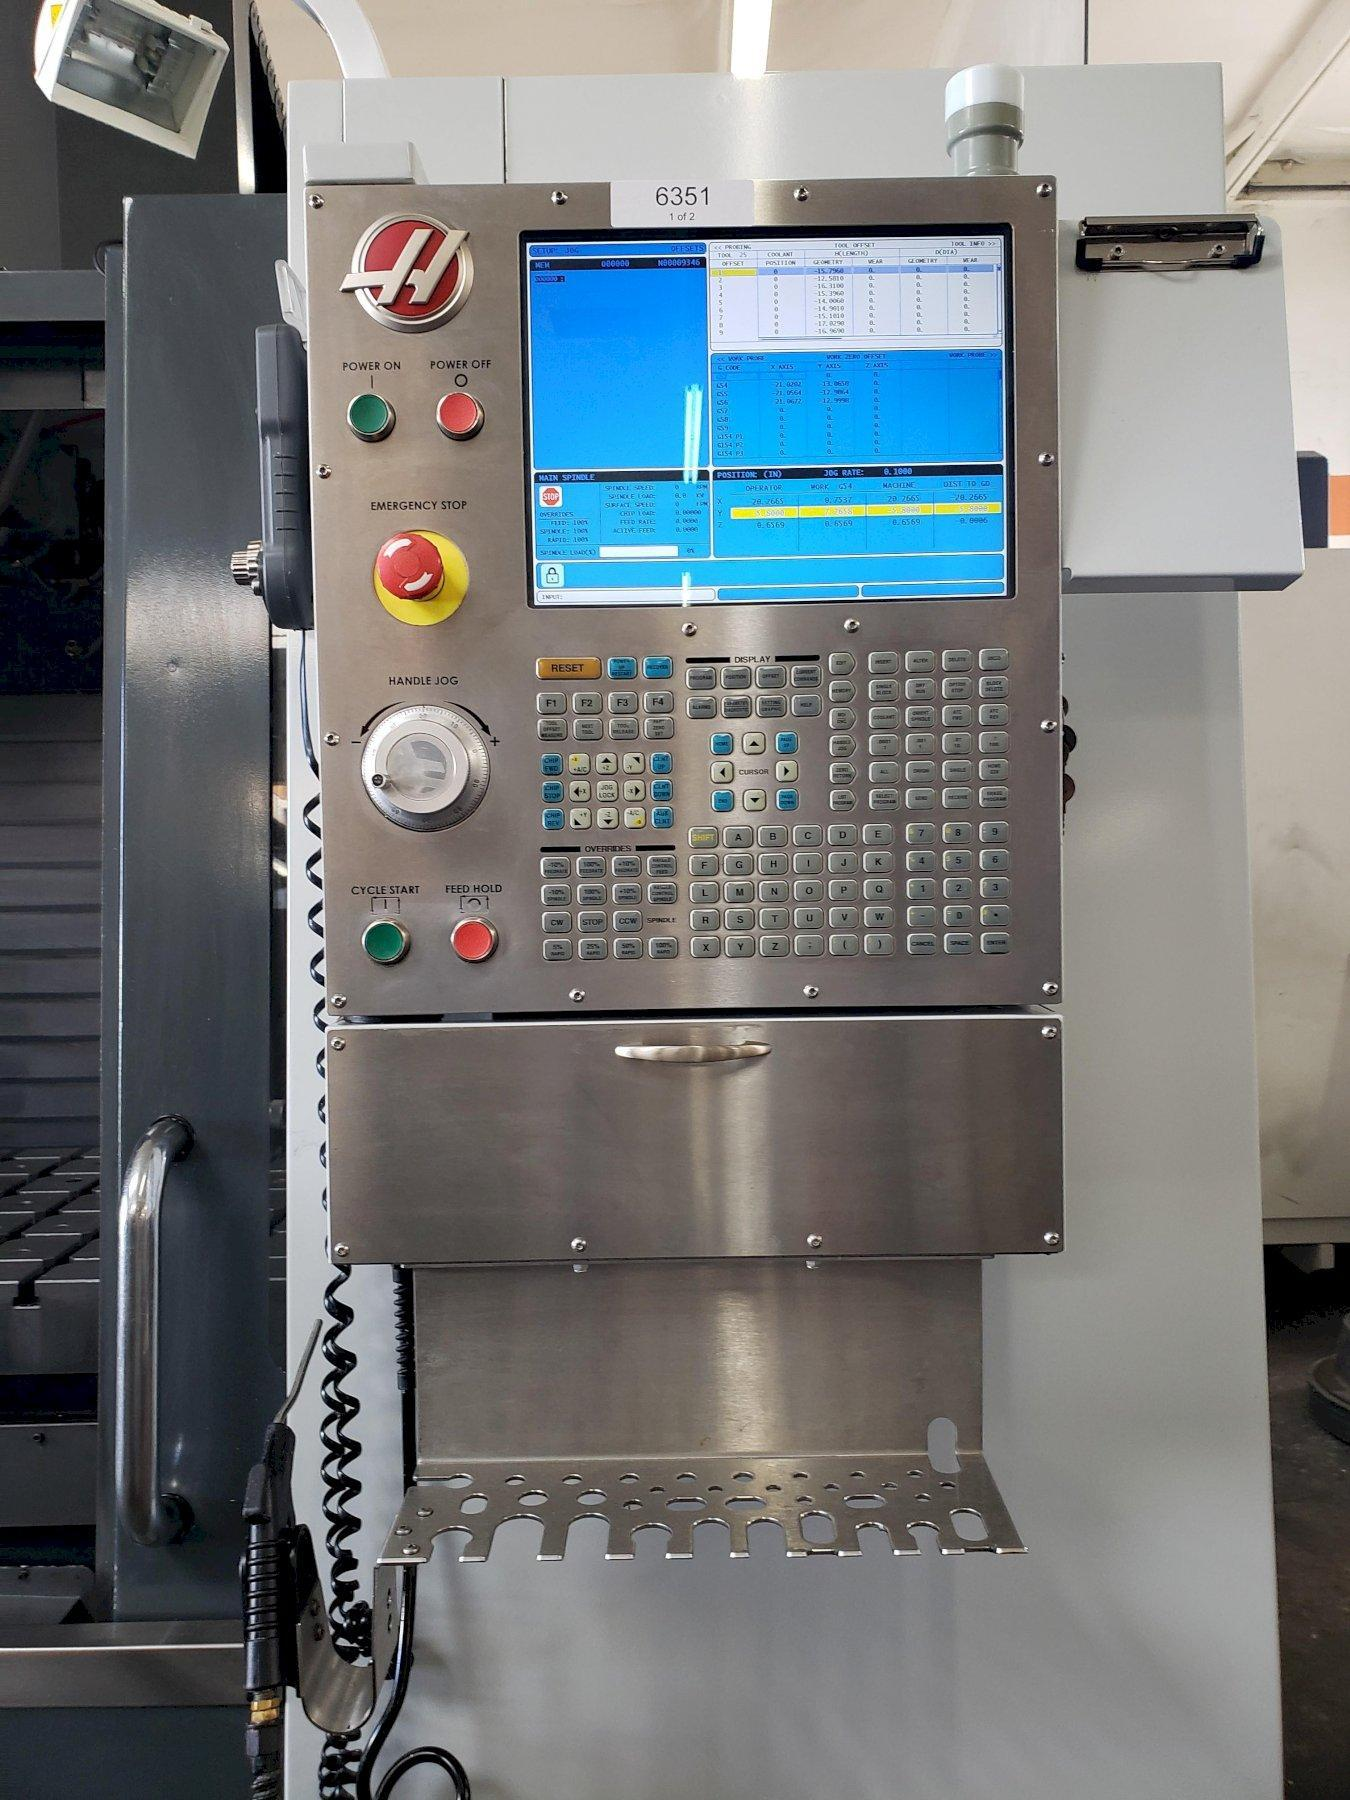 Haas VM-3 Mold Maker 2014 with: Haas Control, Probe, Programmable Coolant, Chip Auger, and Coolant Tank.